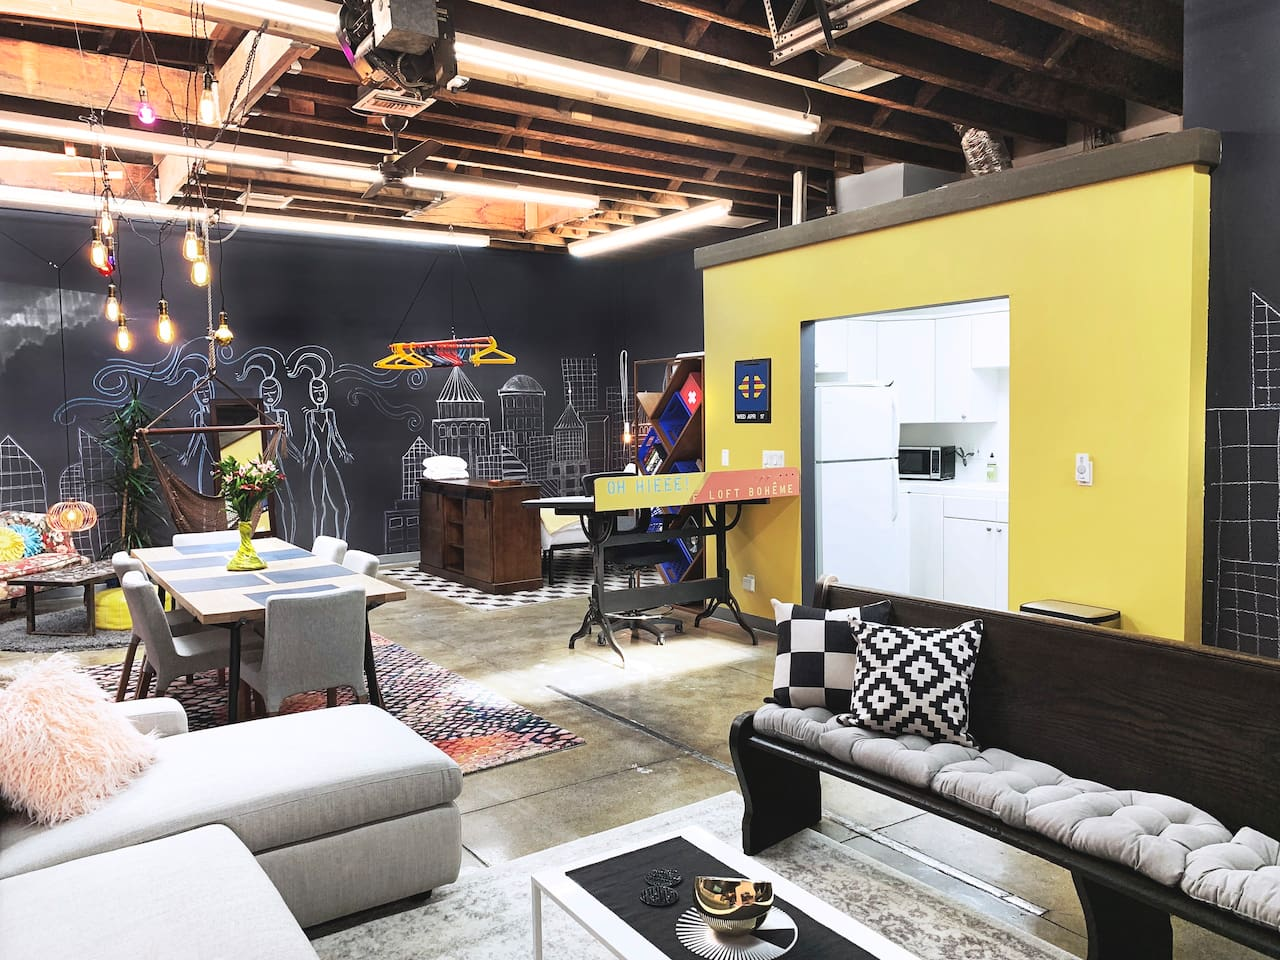 Creative bohemian space that is comfortable yet chic & vibrantly colorful yet visually peaceful. The loft's urban, industrial, and chill vibes compliment its location in the heart of Long Beach's vibrant East Village Arts District.